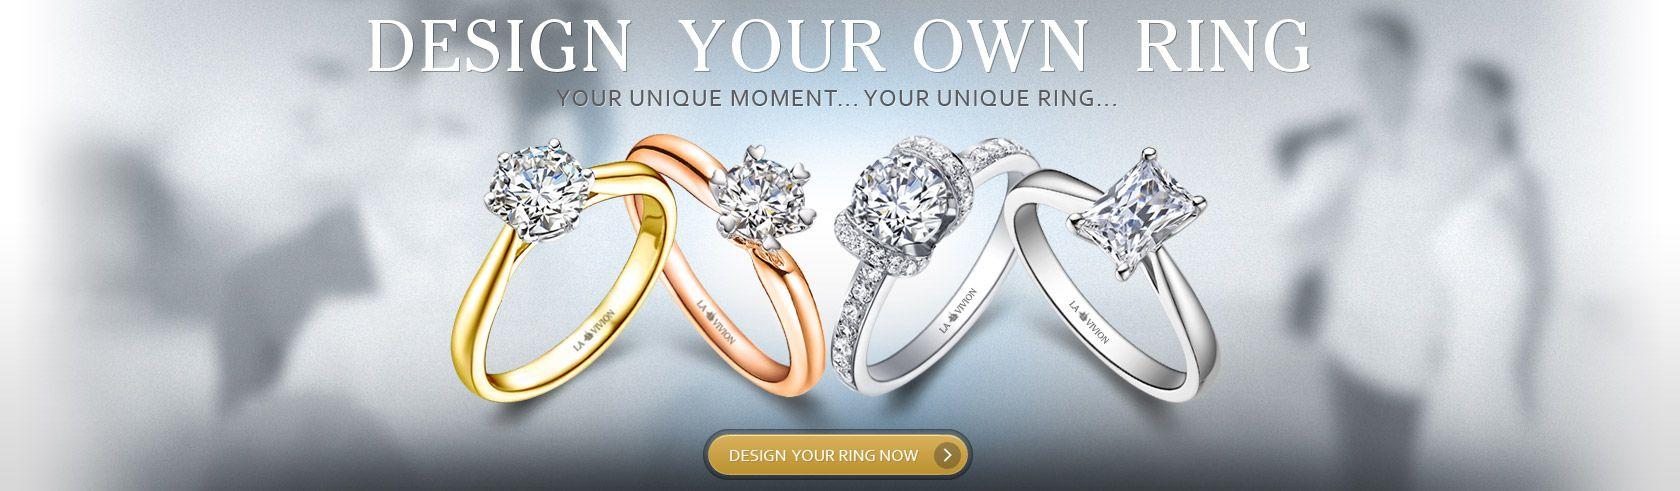 material enhancers jewellery rings emerald engagement design jareds own policy with cut ring size return at jared plus full wedding mens of your